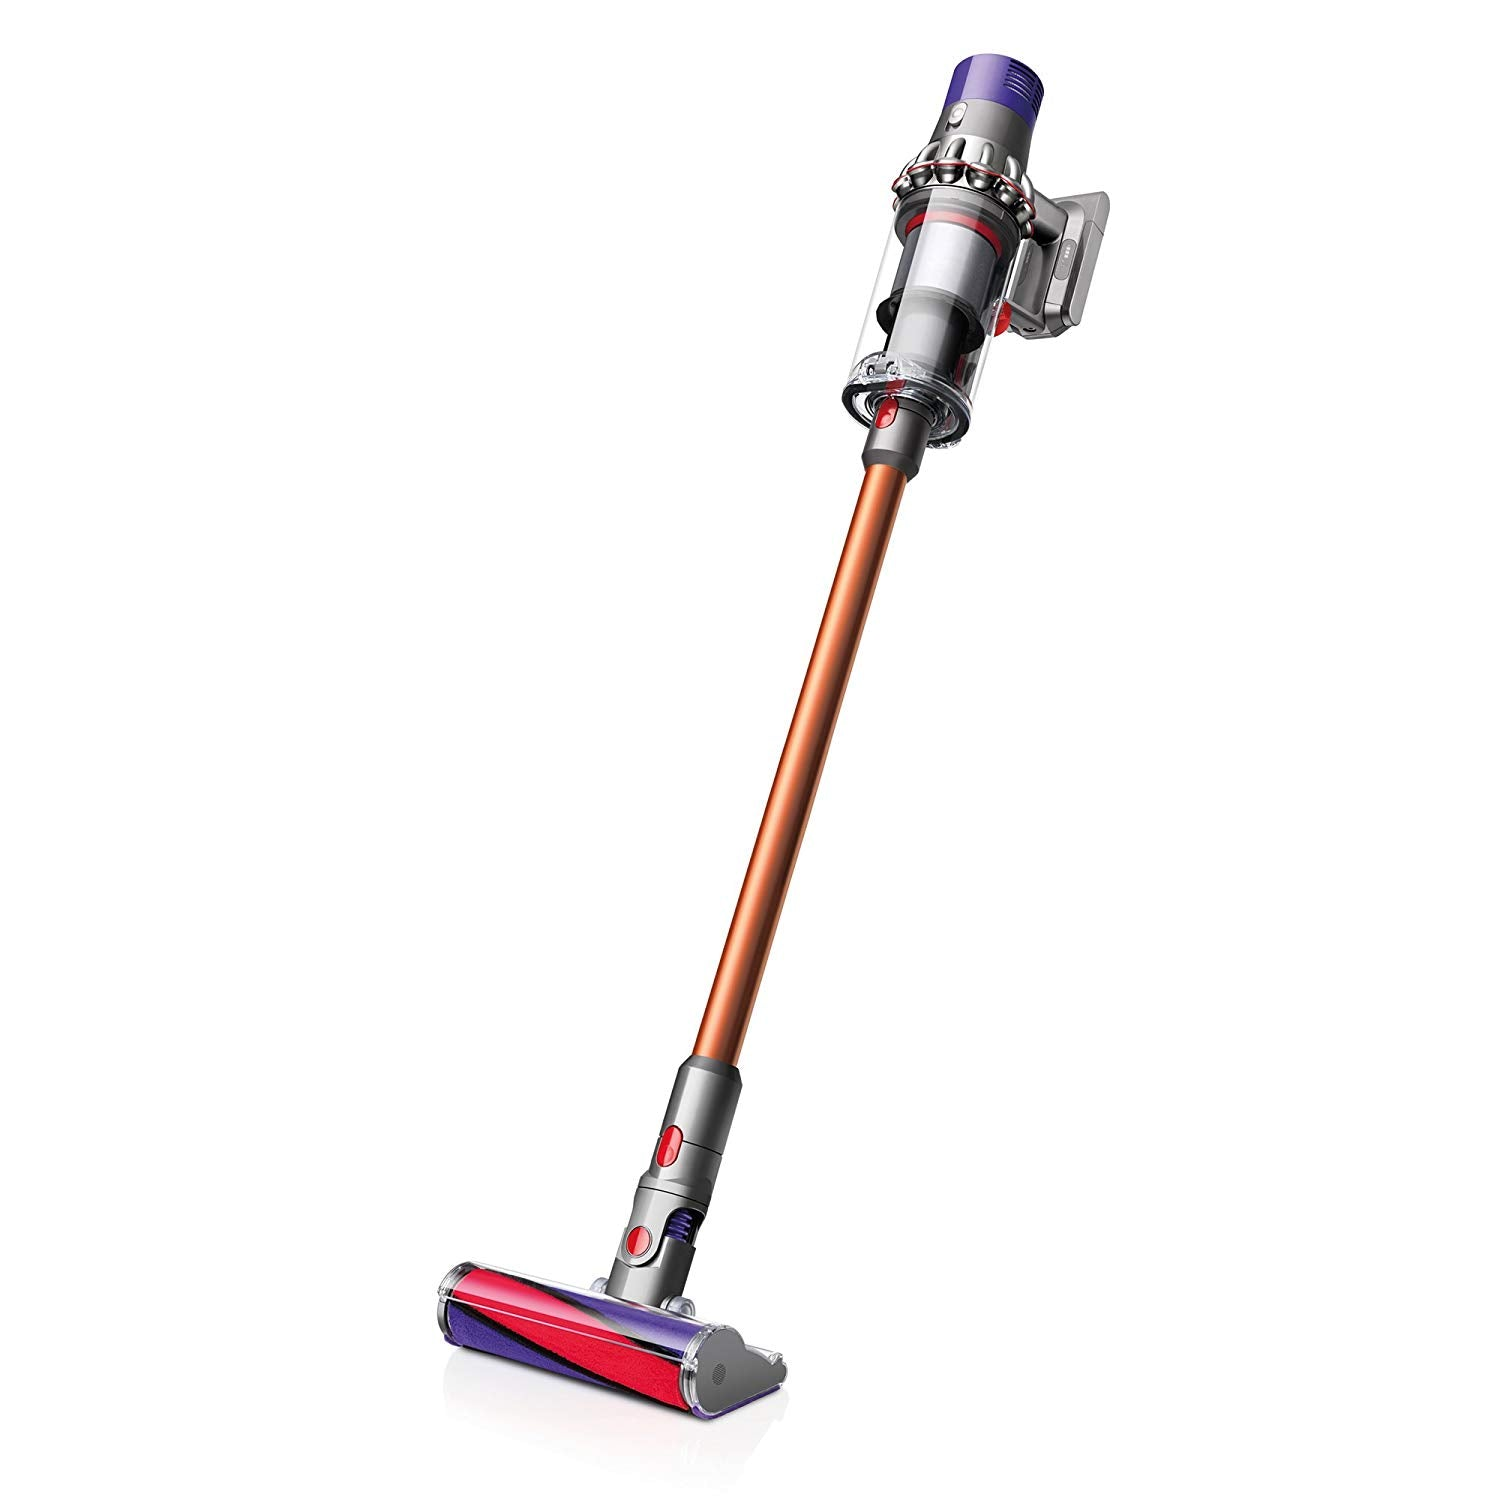 Dyson V10 Absolute Cord-Free Handheld Vacuum Cleaner [ FREE SHIPPING ]